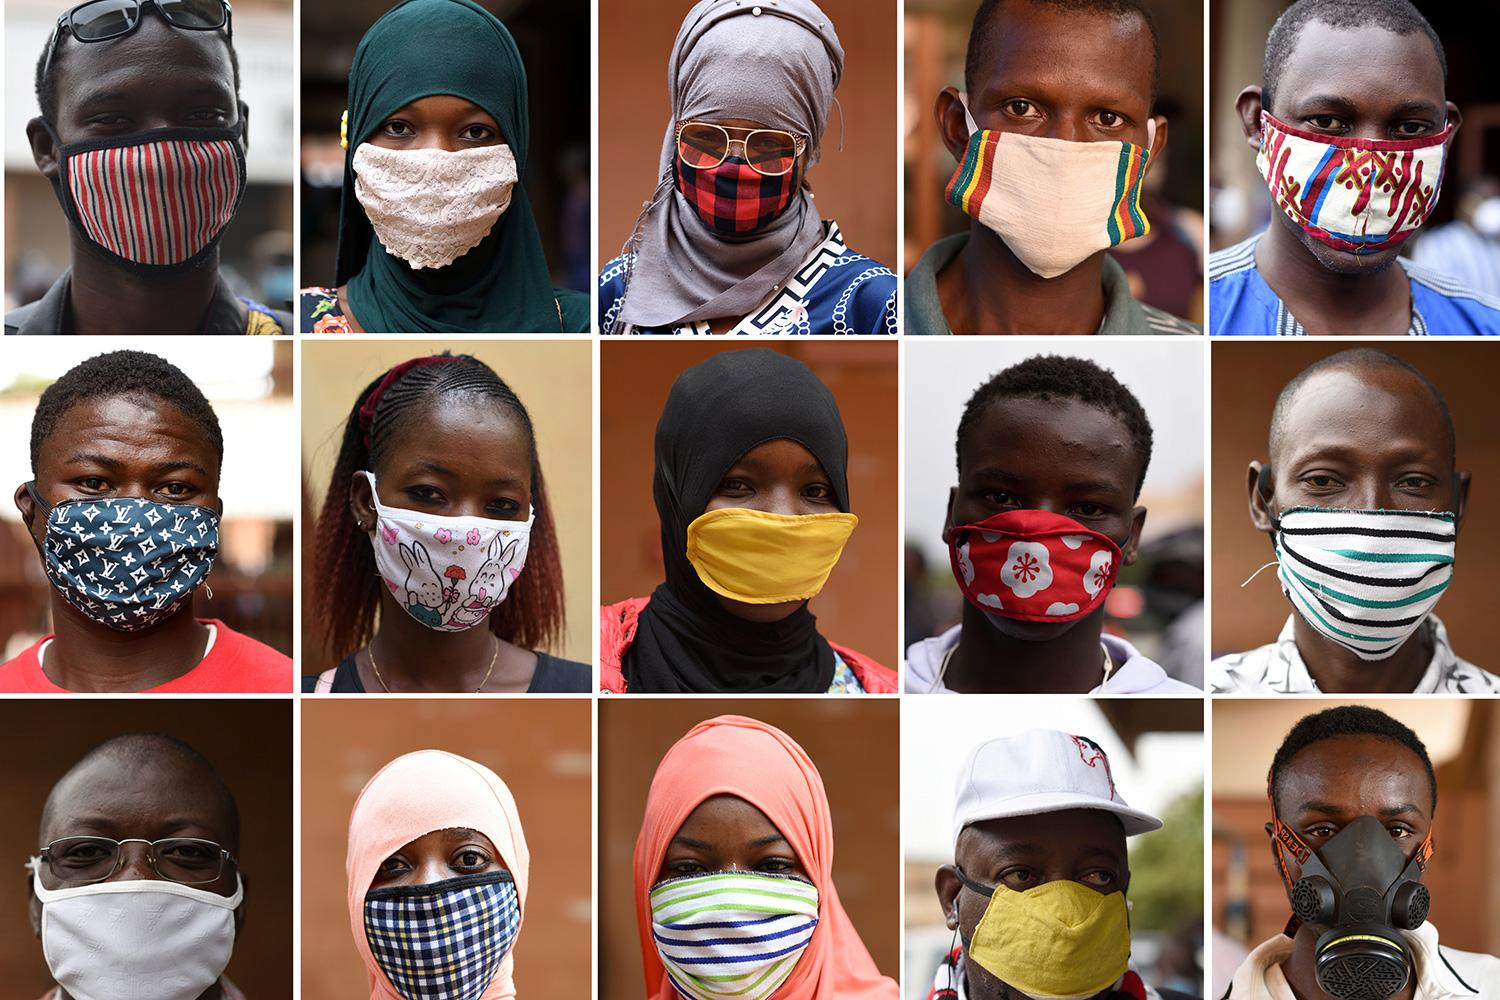 Combination of photos show people wearing face masks at the re-opening of the Rood-Wooko city central market, amid the spread of coronavirus in Ouagadougou, Burkina Faso, on April 20, 2020. The picture is a photo montage showing an array of people wearing a variety of masks. REUTERS/Anne Mimault